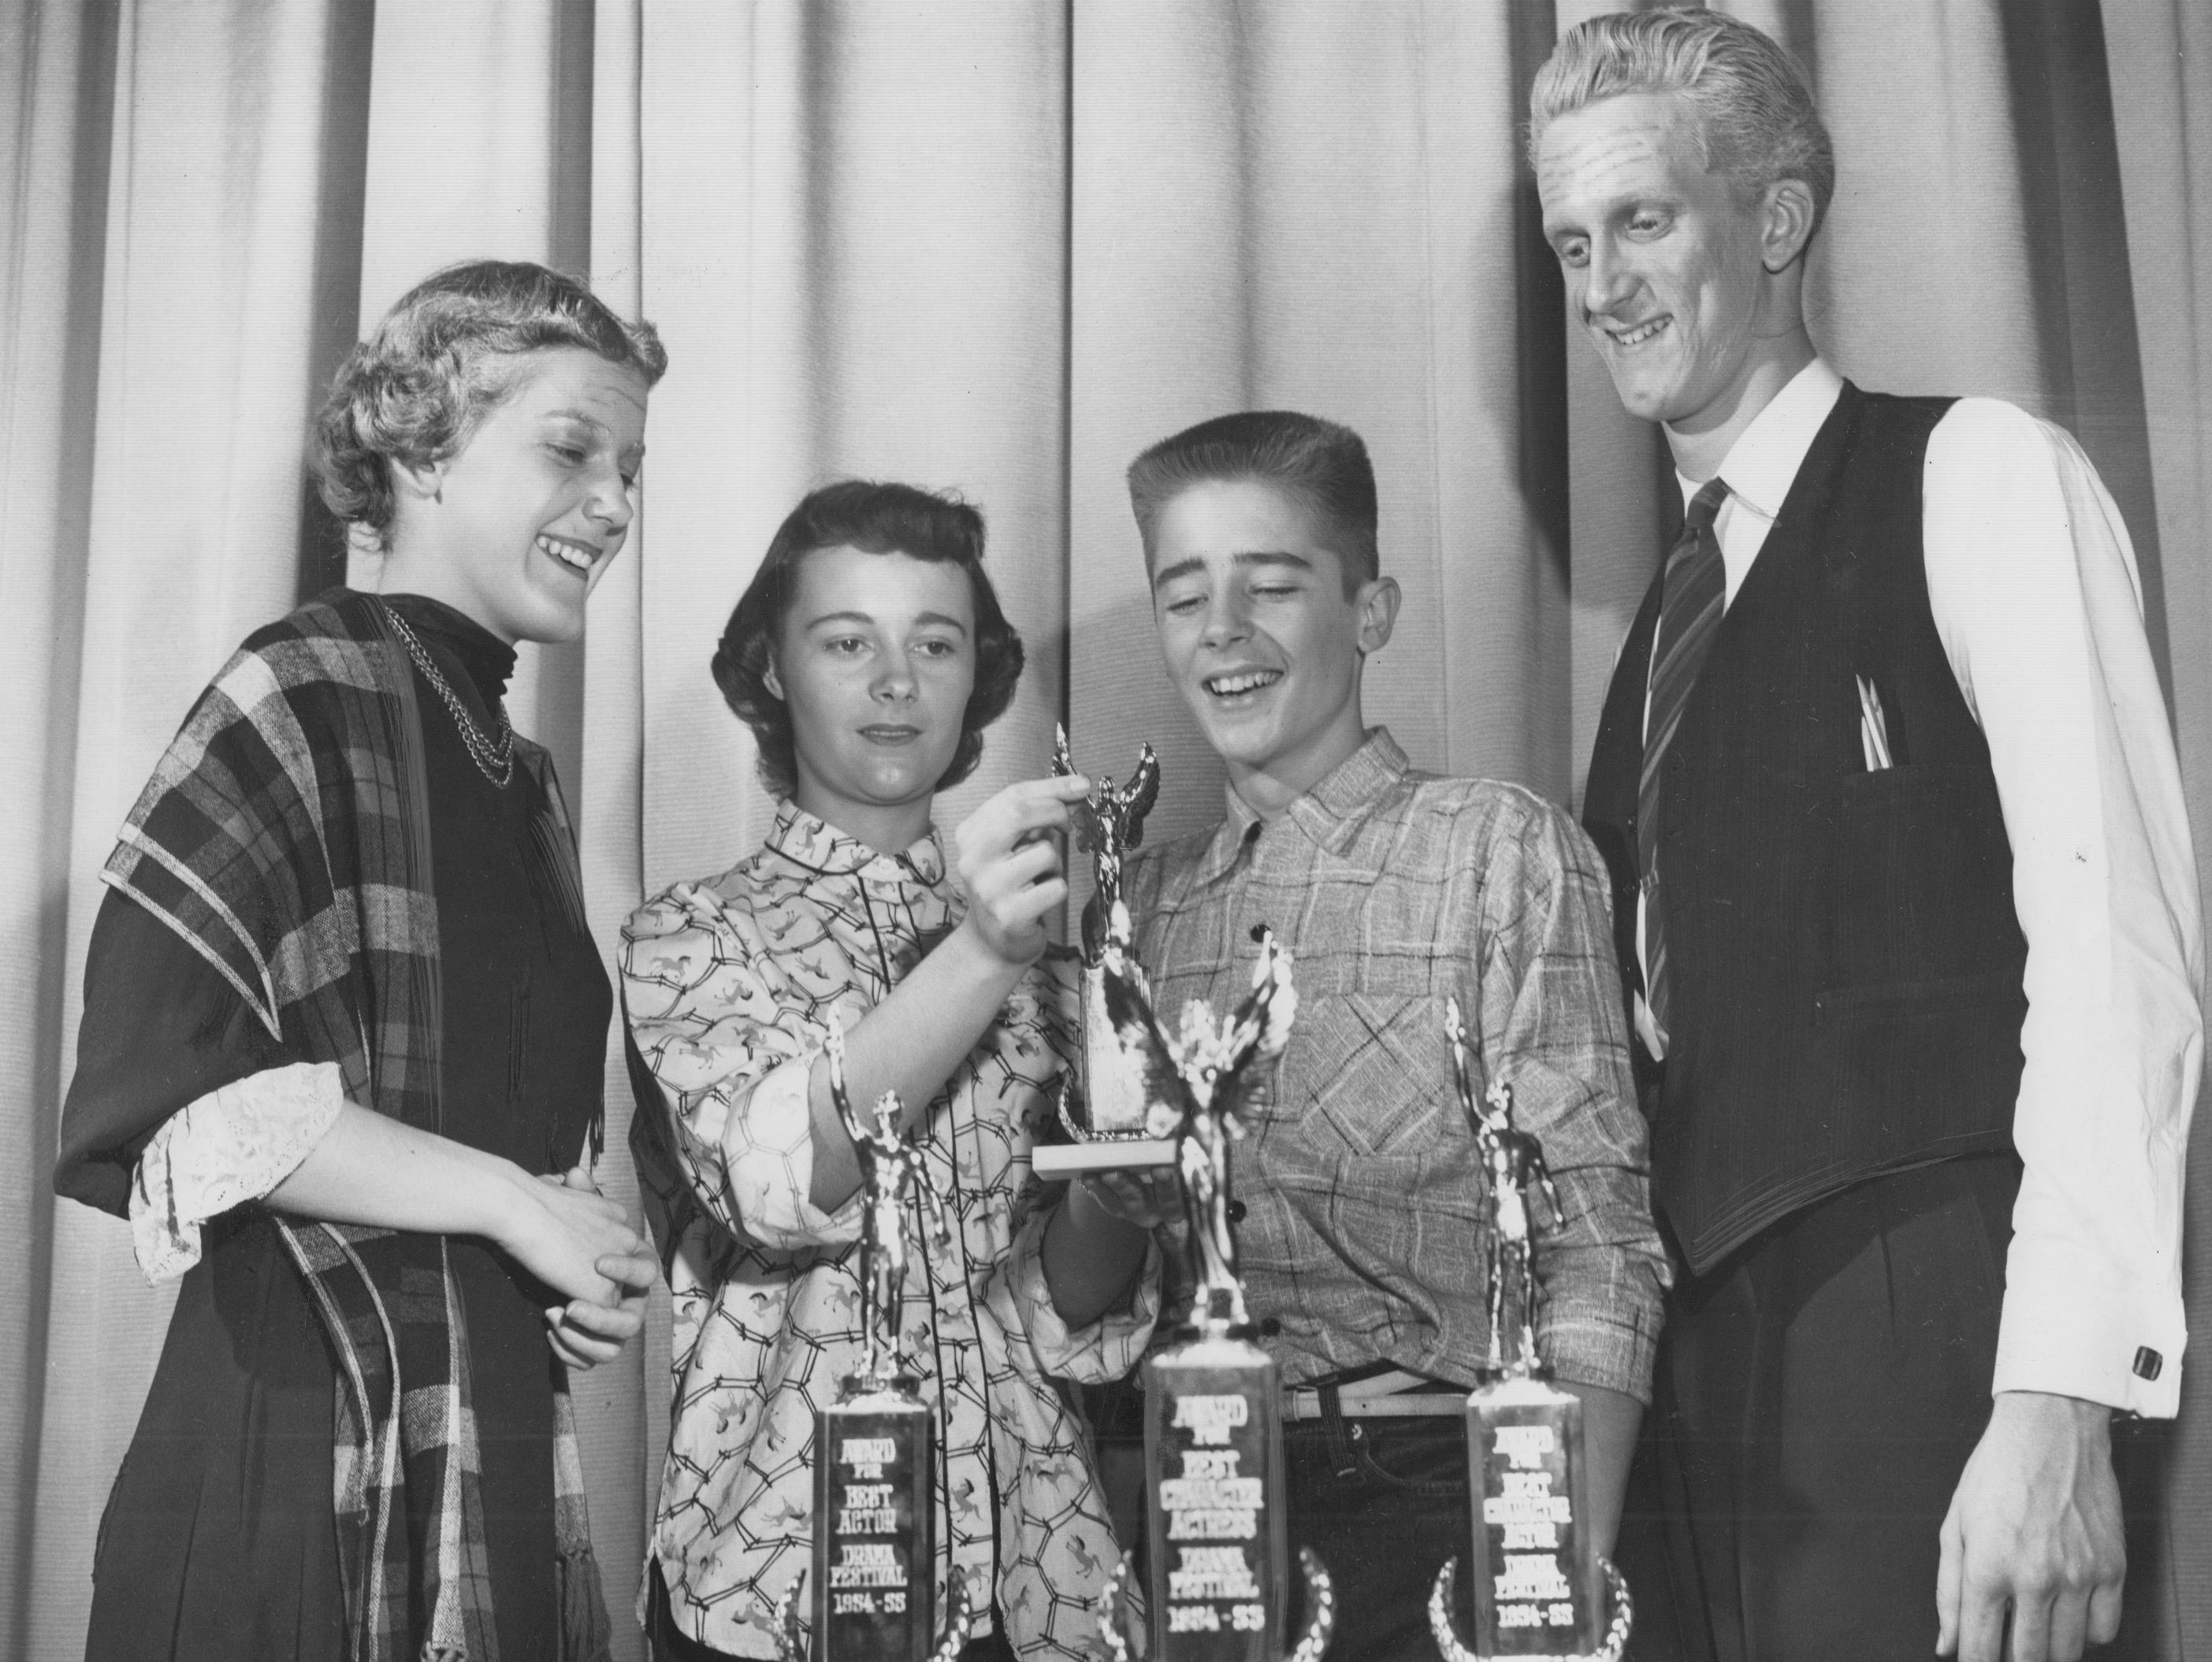 Broad Ripple and Thomas Carr Howe High School thespians won all the individual acting awards during the 1954 Indianapolis High School Drama Festival at Emmerich Manual Training High School. Comparing trophies are (left to right) Barbara Miles, Broad Ripple; Best character actress, Susan Stirling, Howe; best straight actress; James Harvey, Howe, Best straight actor and Robert Wait Broad Ripple, best character actor.